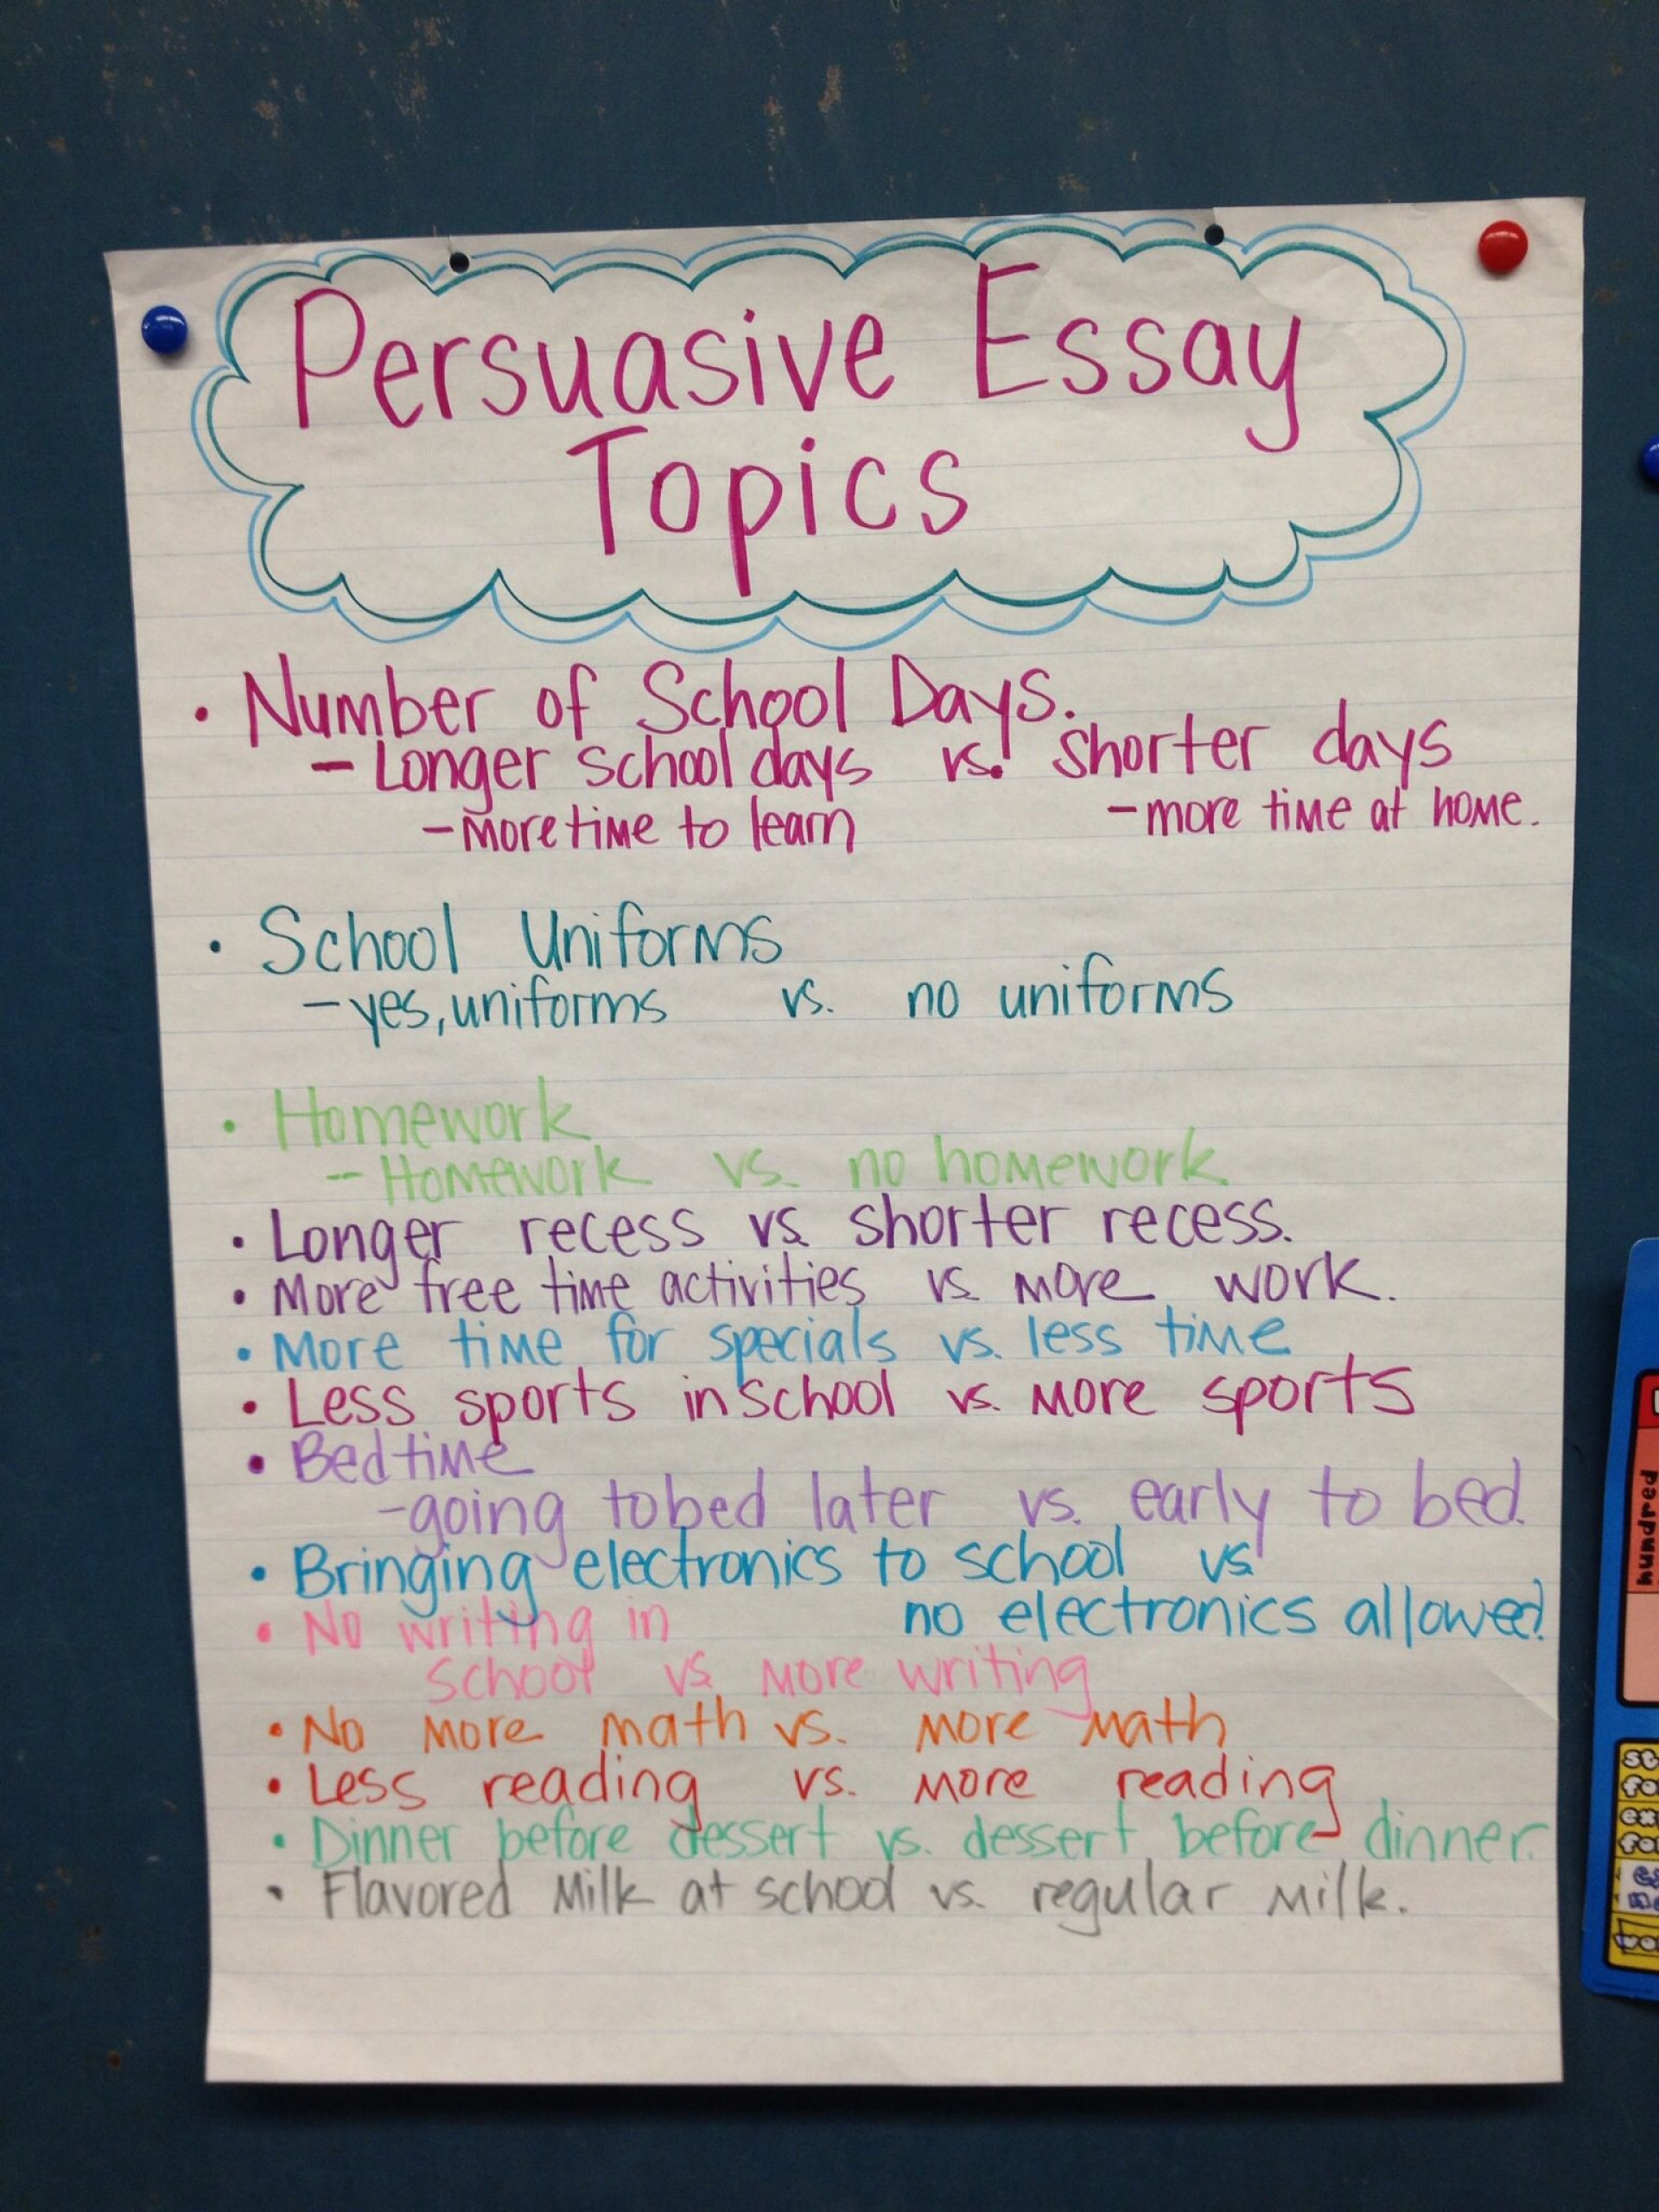 004 Topics For Persuasive Essays Essay Incredible 5th Graders Good A Middle Schoolers High School 1920